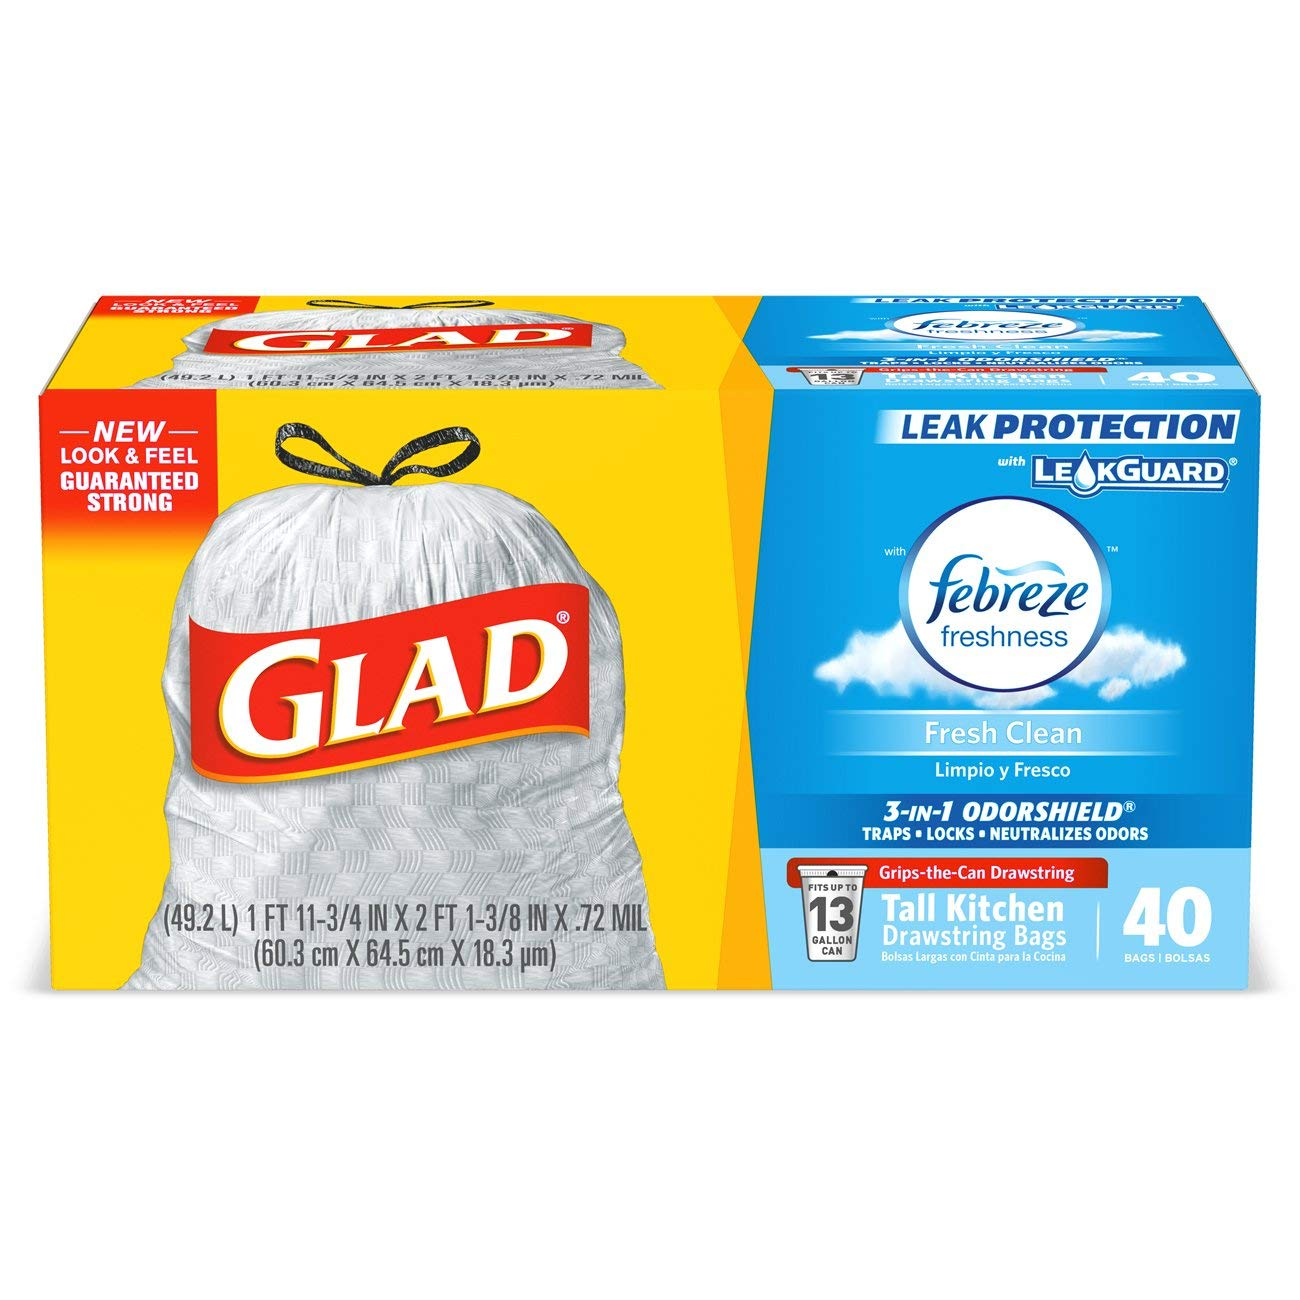 Glad Tall Kitchen Drawstring Trash Bags - OdorShield 13 Gallon Grey Trash Bag, Febreze Fresh Clean - 40 Count